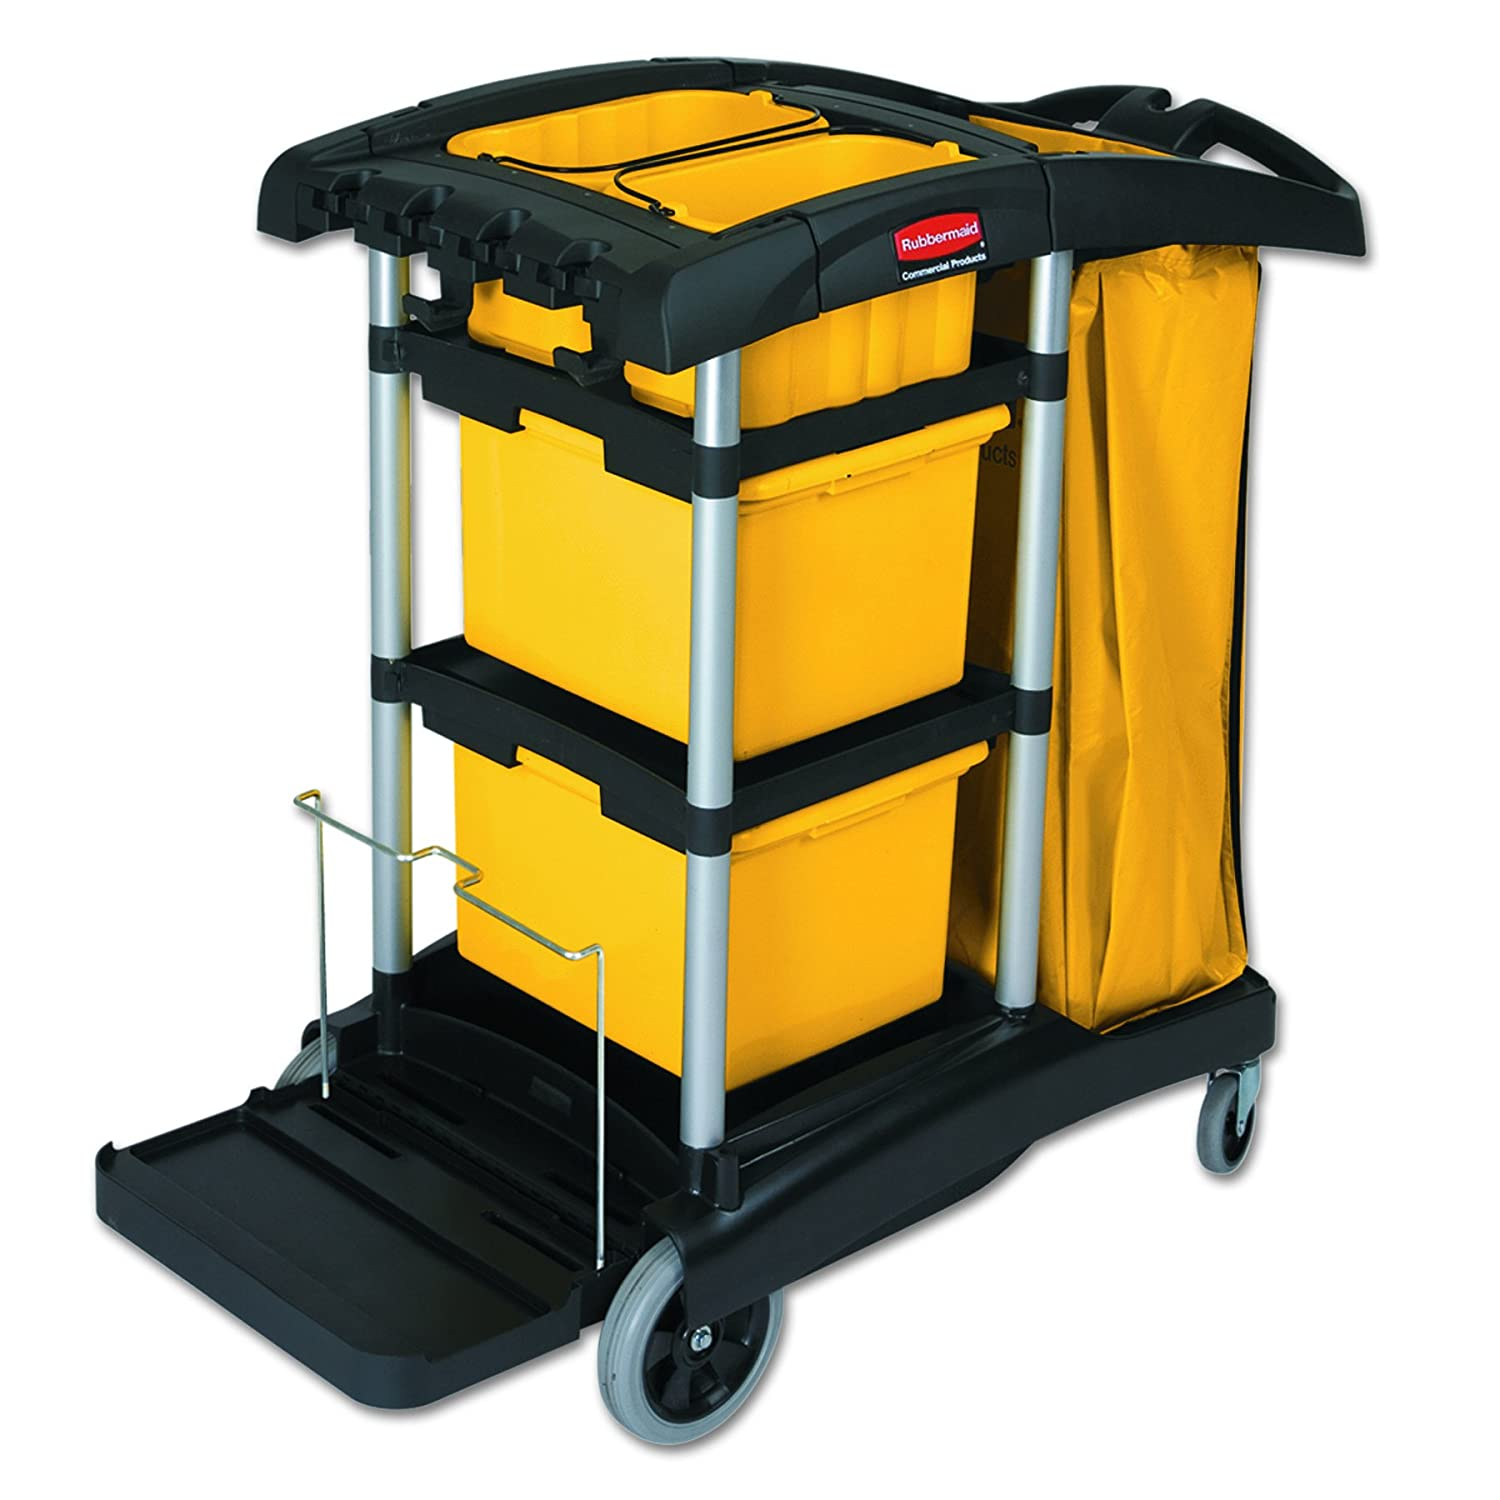 Rubbermaid Commercial Housekeeping Cart with Yellow Bins and Zippered Yellow Bag, Black, FG9T7300BLA